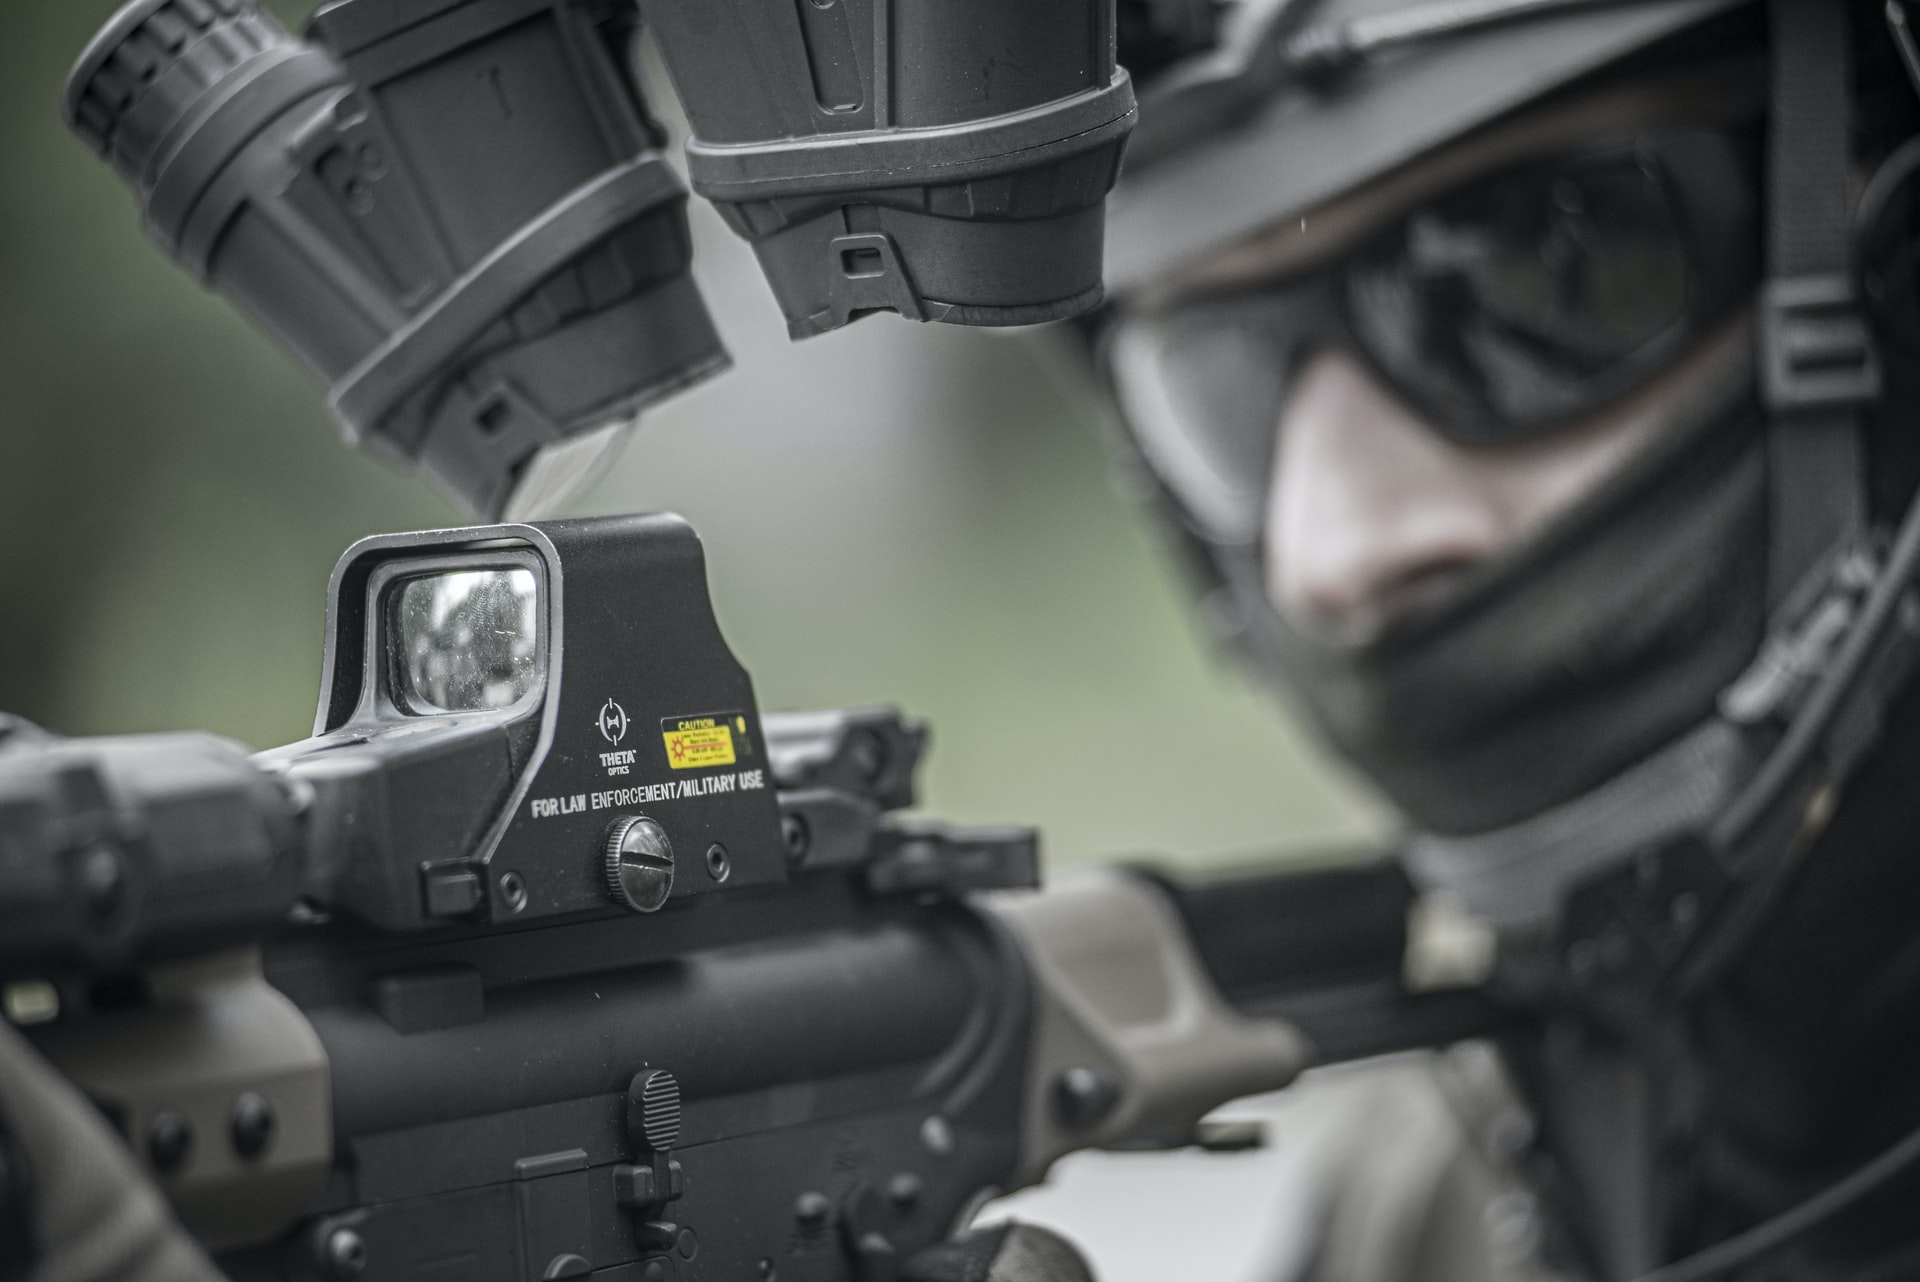 Additional Devices for Night Airsoft Games